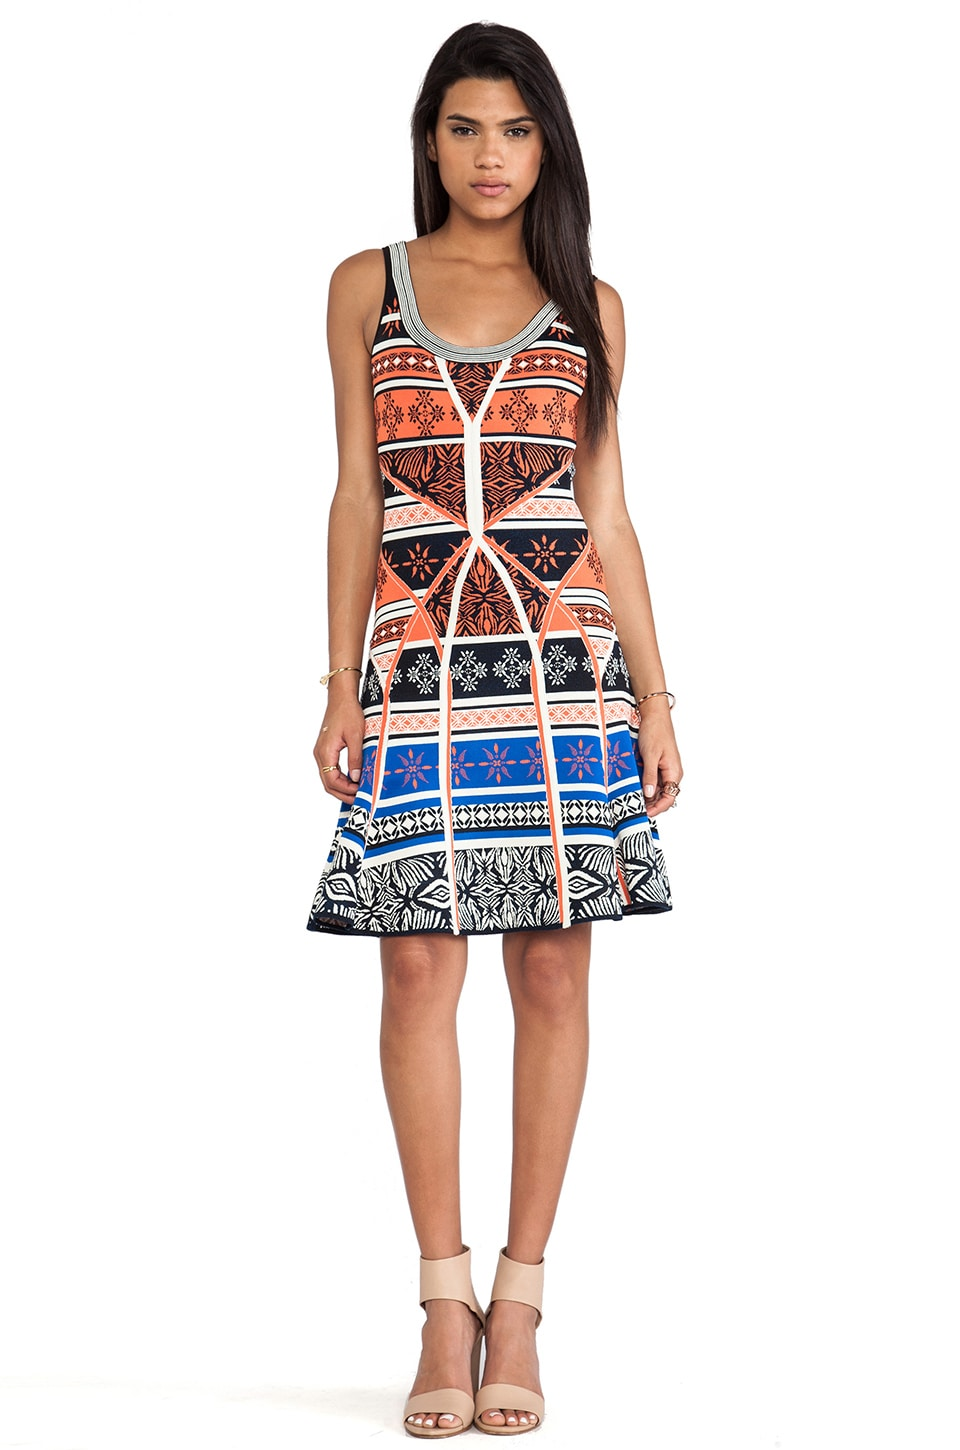 Diane von Furstenberg Ilsa Dress in Desert Sands